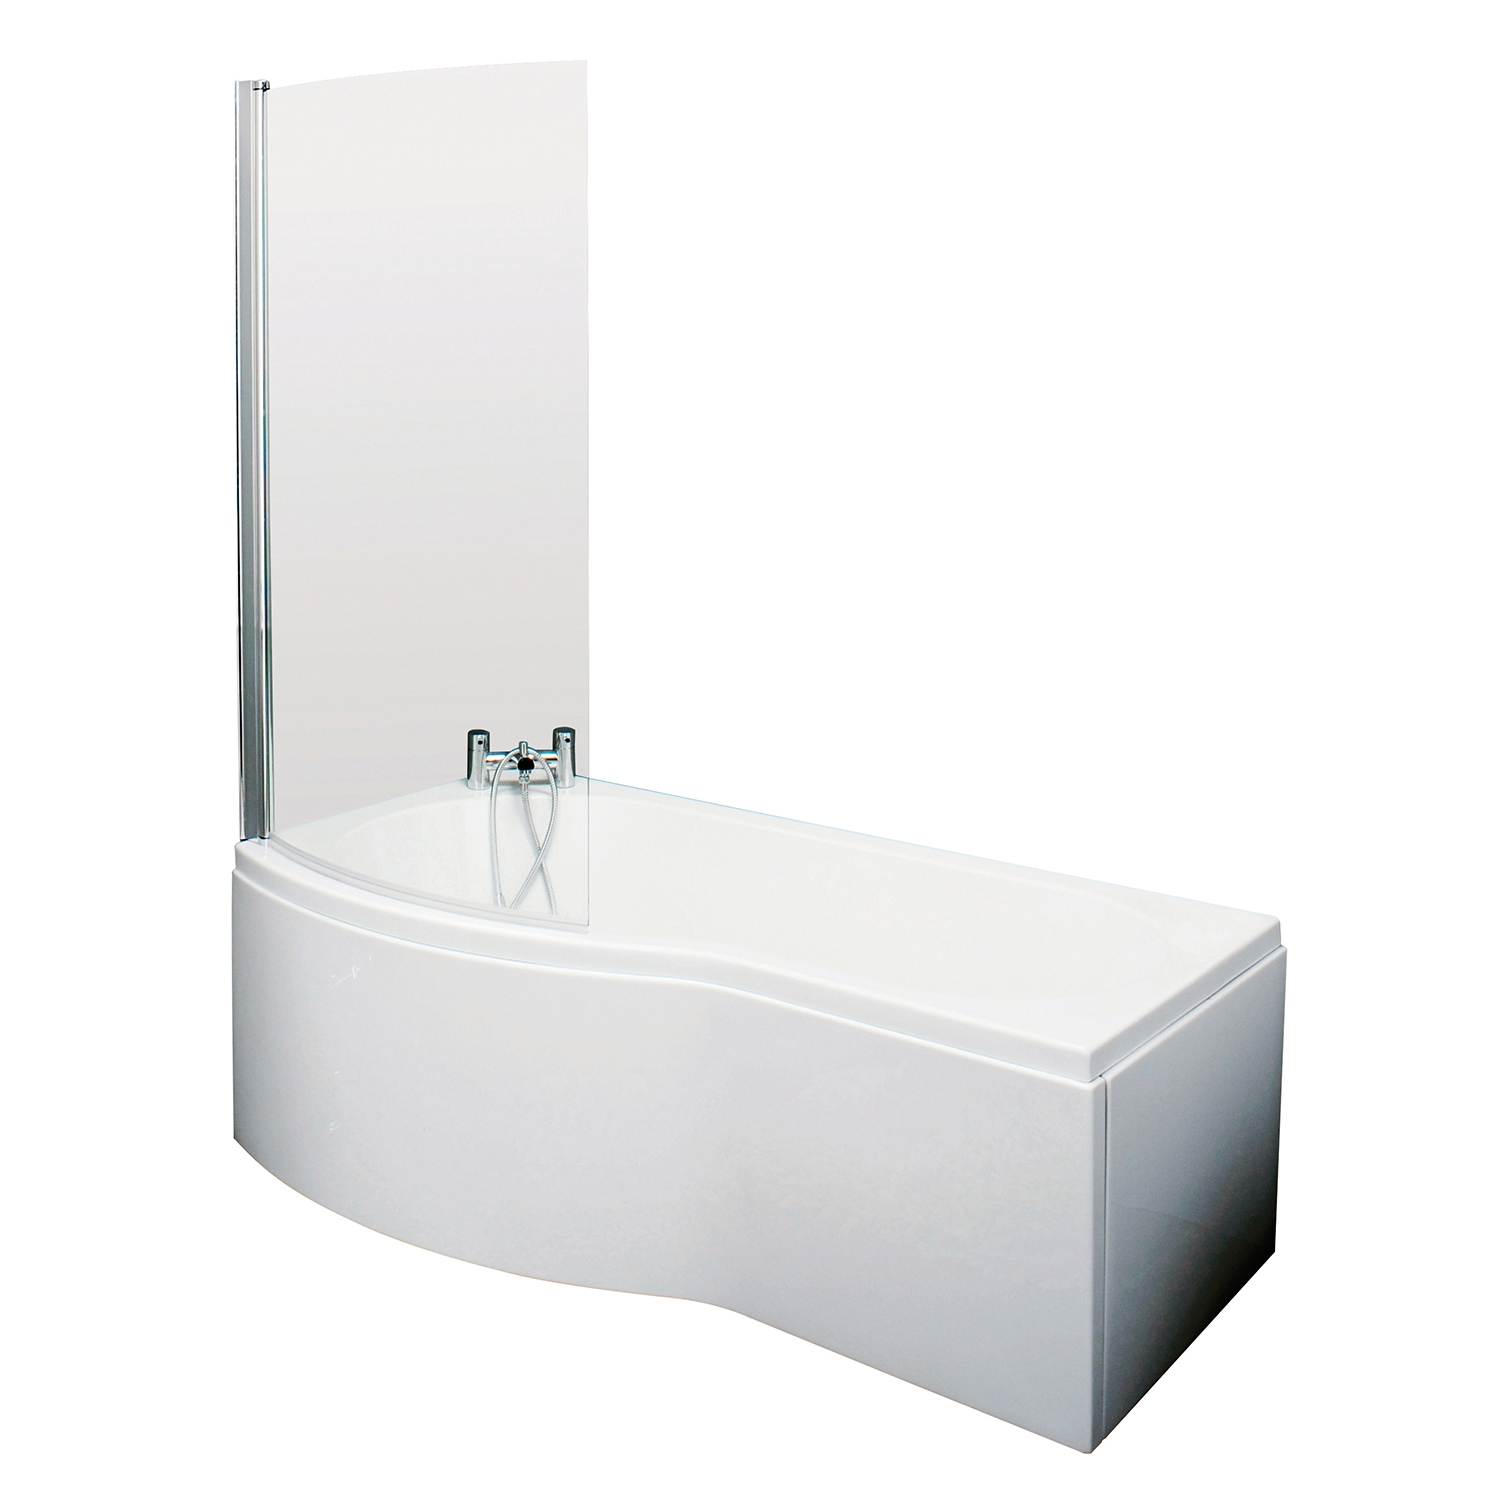 Premier B-Shaped Shower Bath Front Panel and Screen 1500mm x 735mm/800mm Left Handed - Acrylic